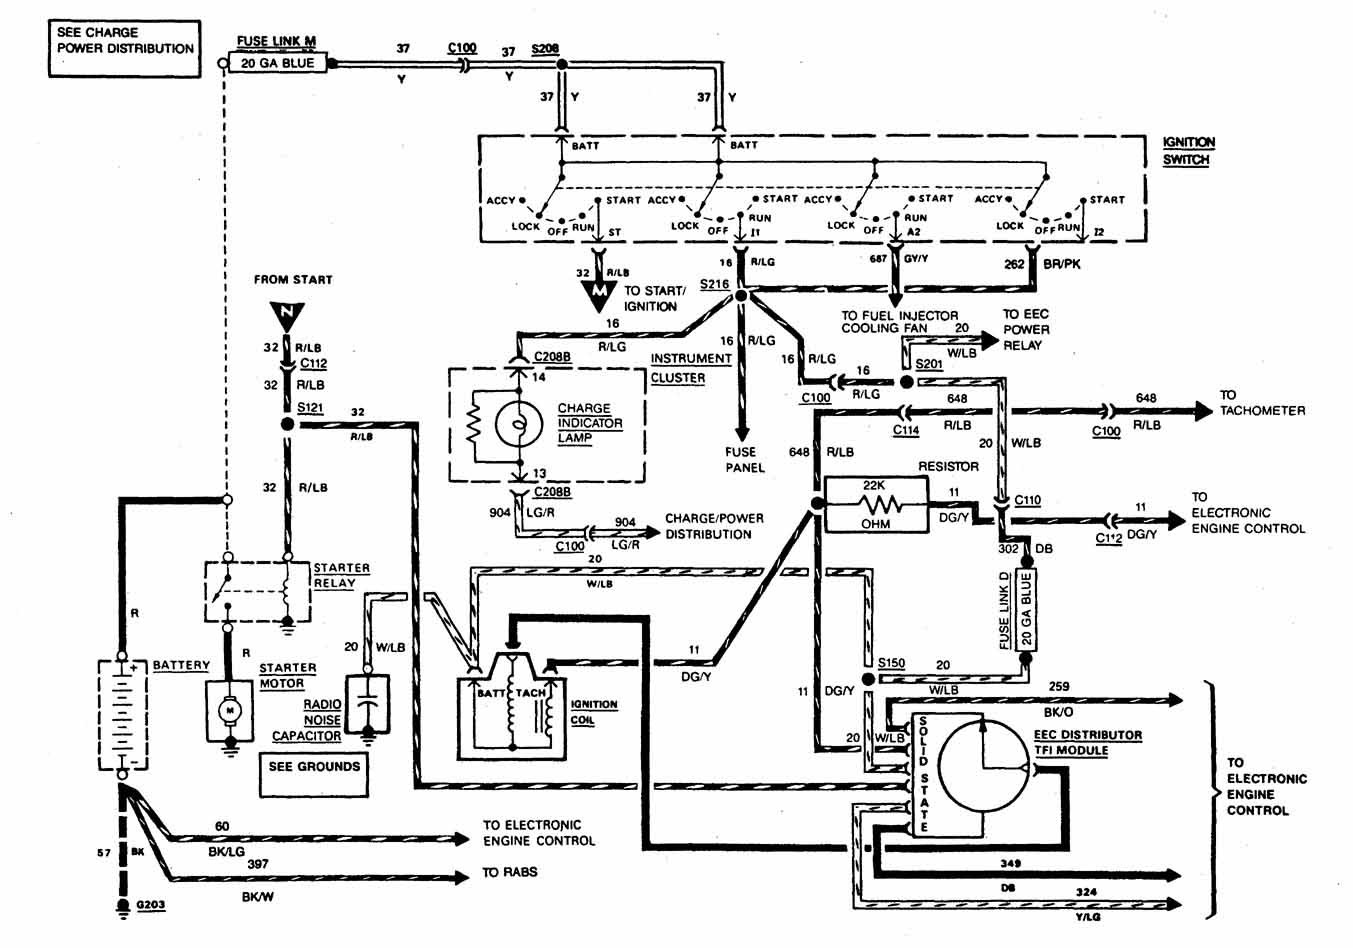 ford bronco starter solenoid wiring diagram inspirational 89 f250 wiring diagram diagrams schematics with 1990 ford roc grp of ford bronco starter solenoid wiring diagram?w=1000 1987 ford ranger starter solenoid wiring diagram